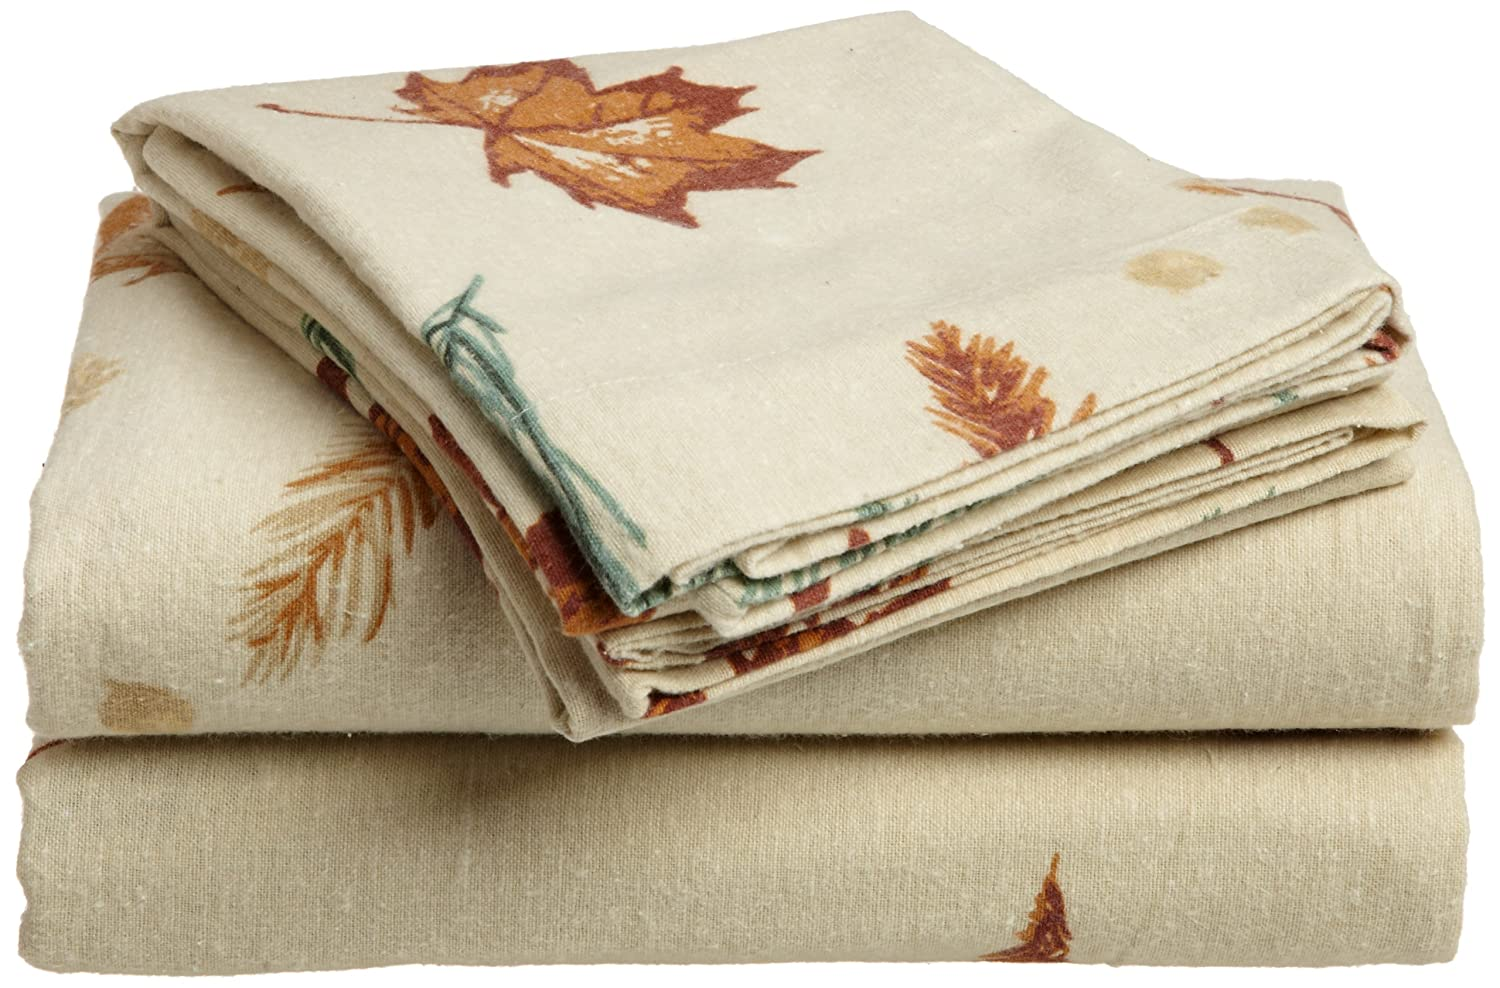 Divatex 100-Percent Cotton Flannel Queen Sheet Set, Autumn Leaf